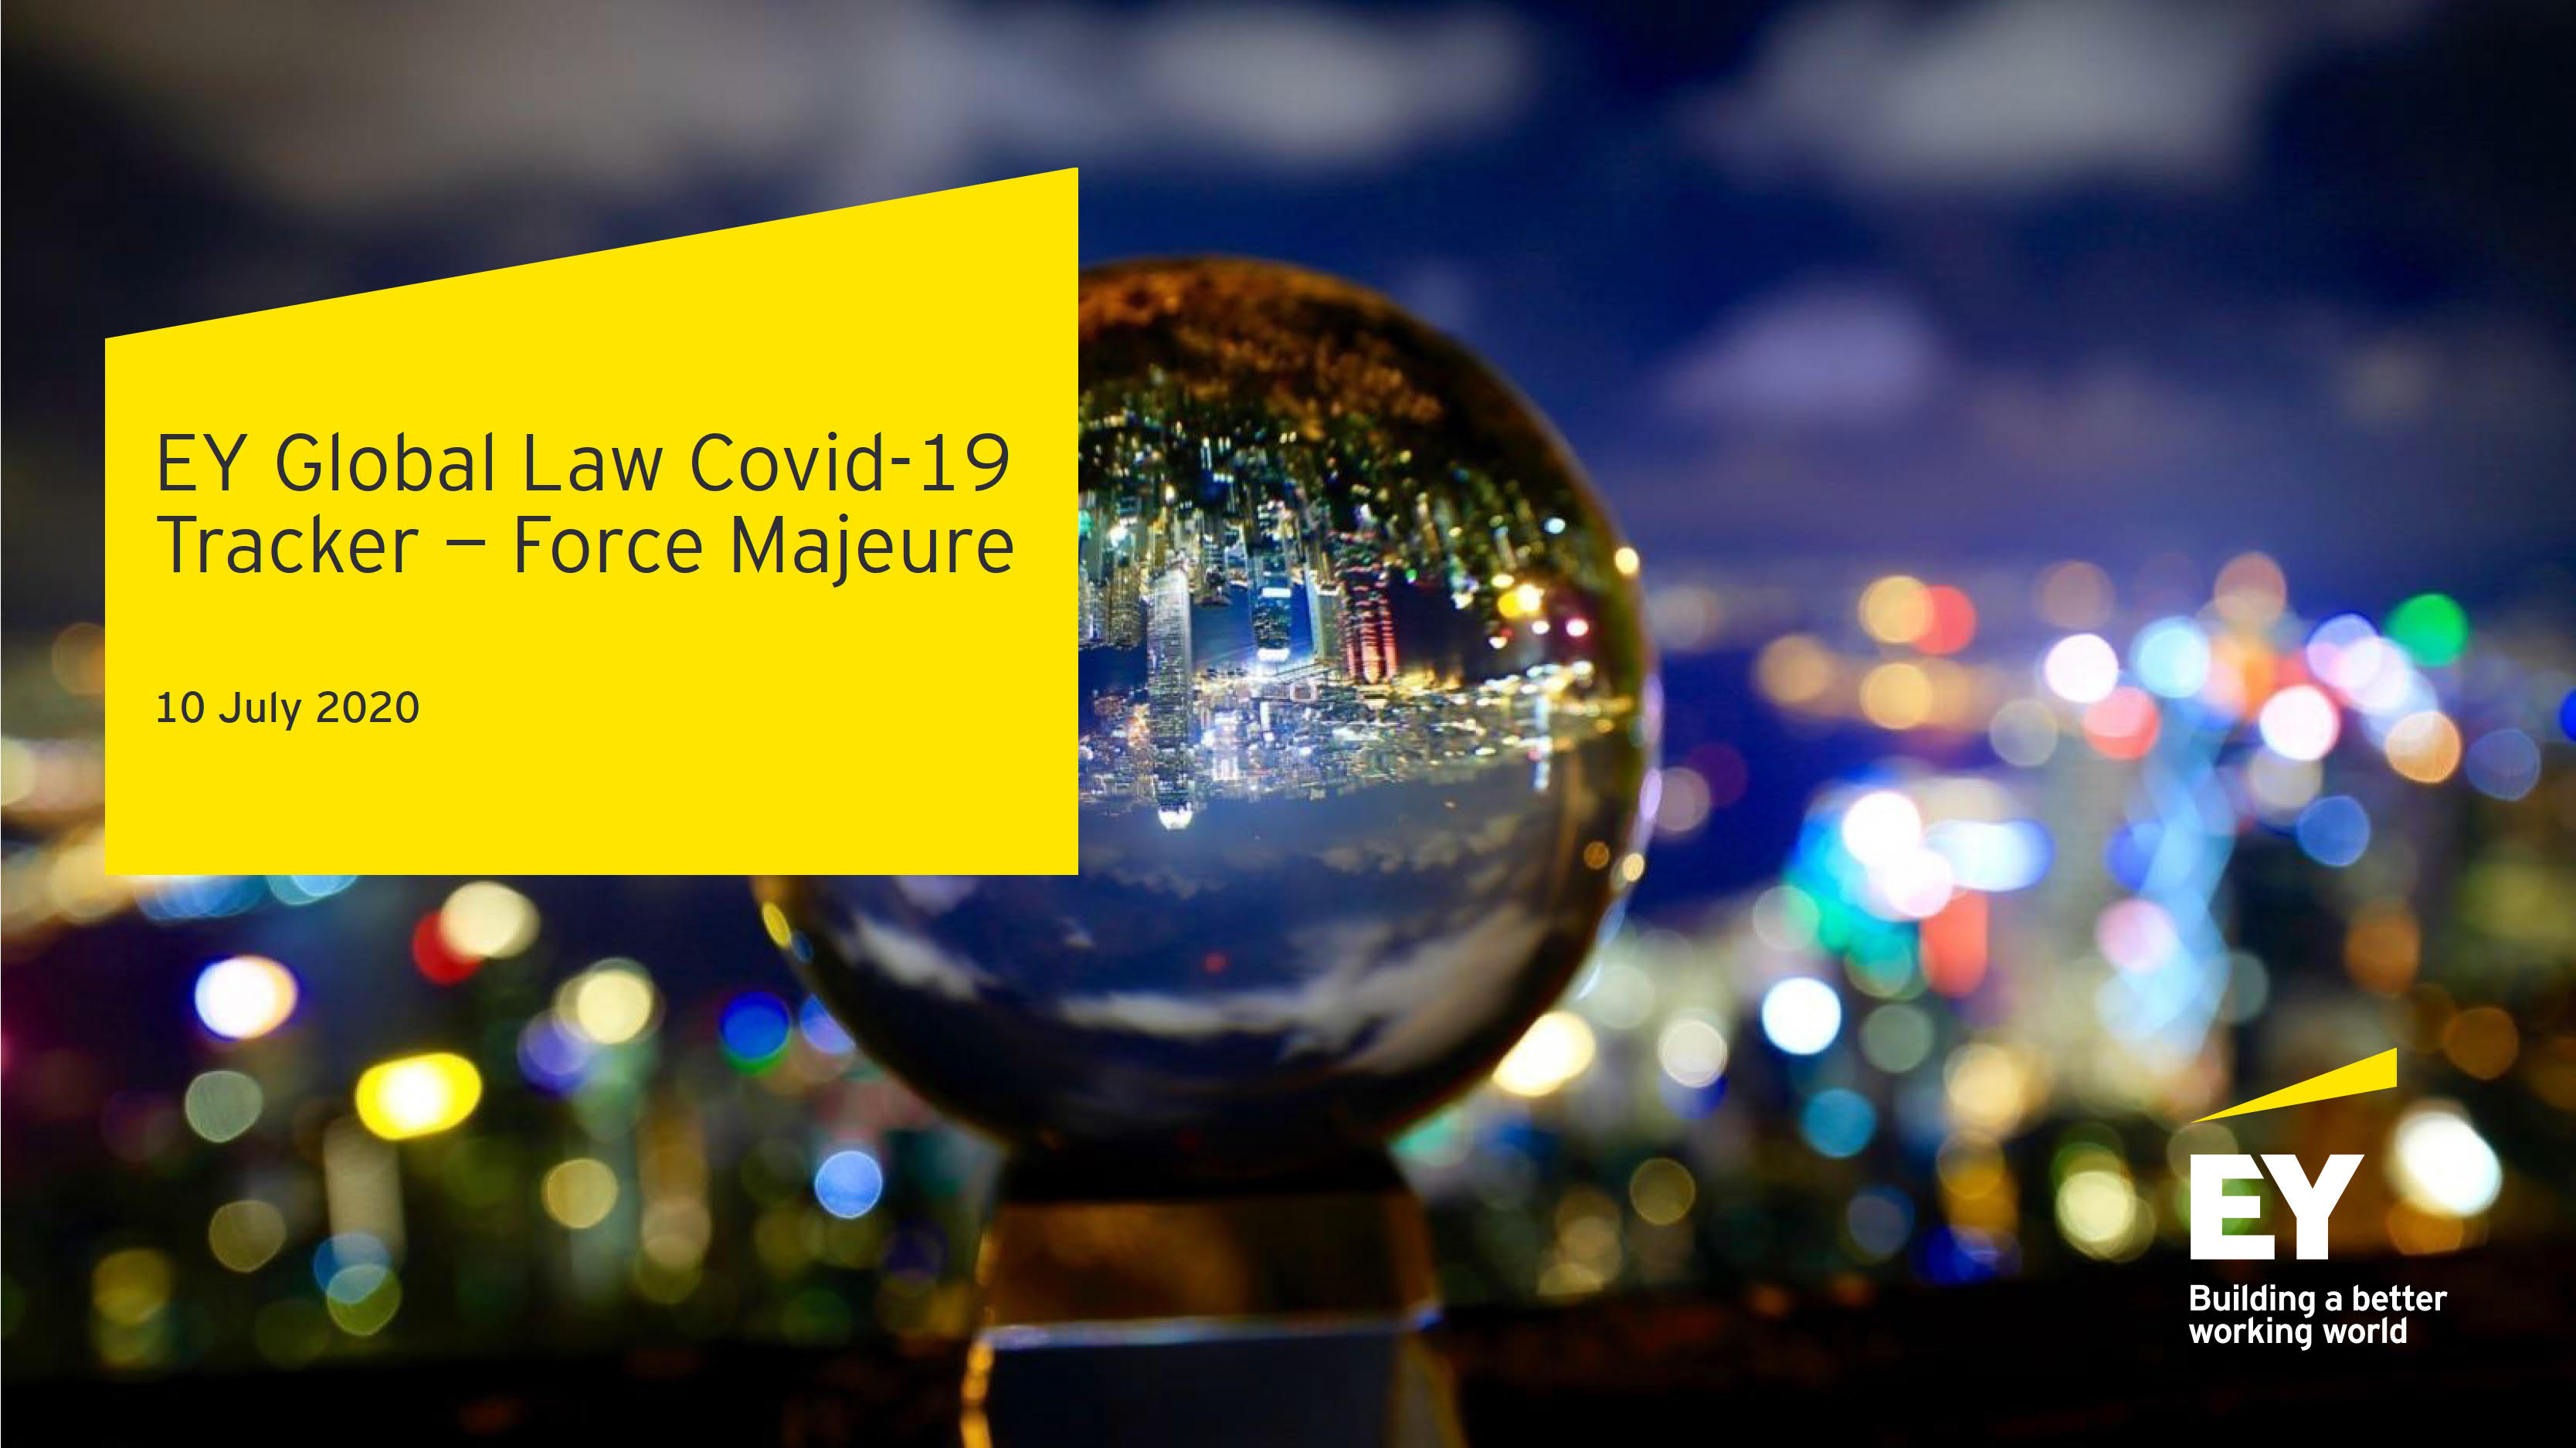 EY Global Law Covid-19 Tracker – Force Majeure 10 July 2020